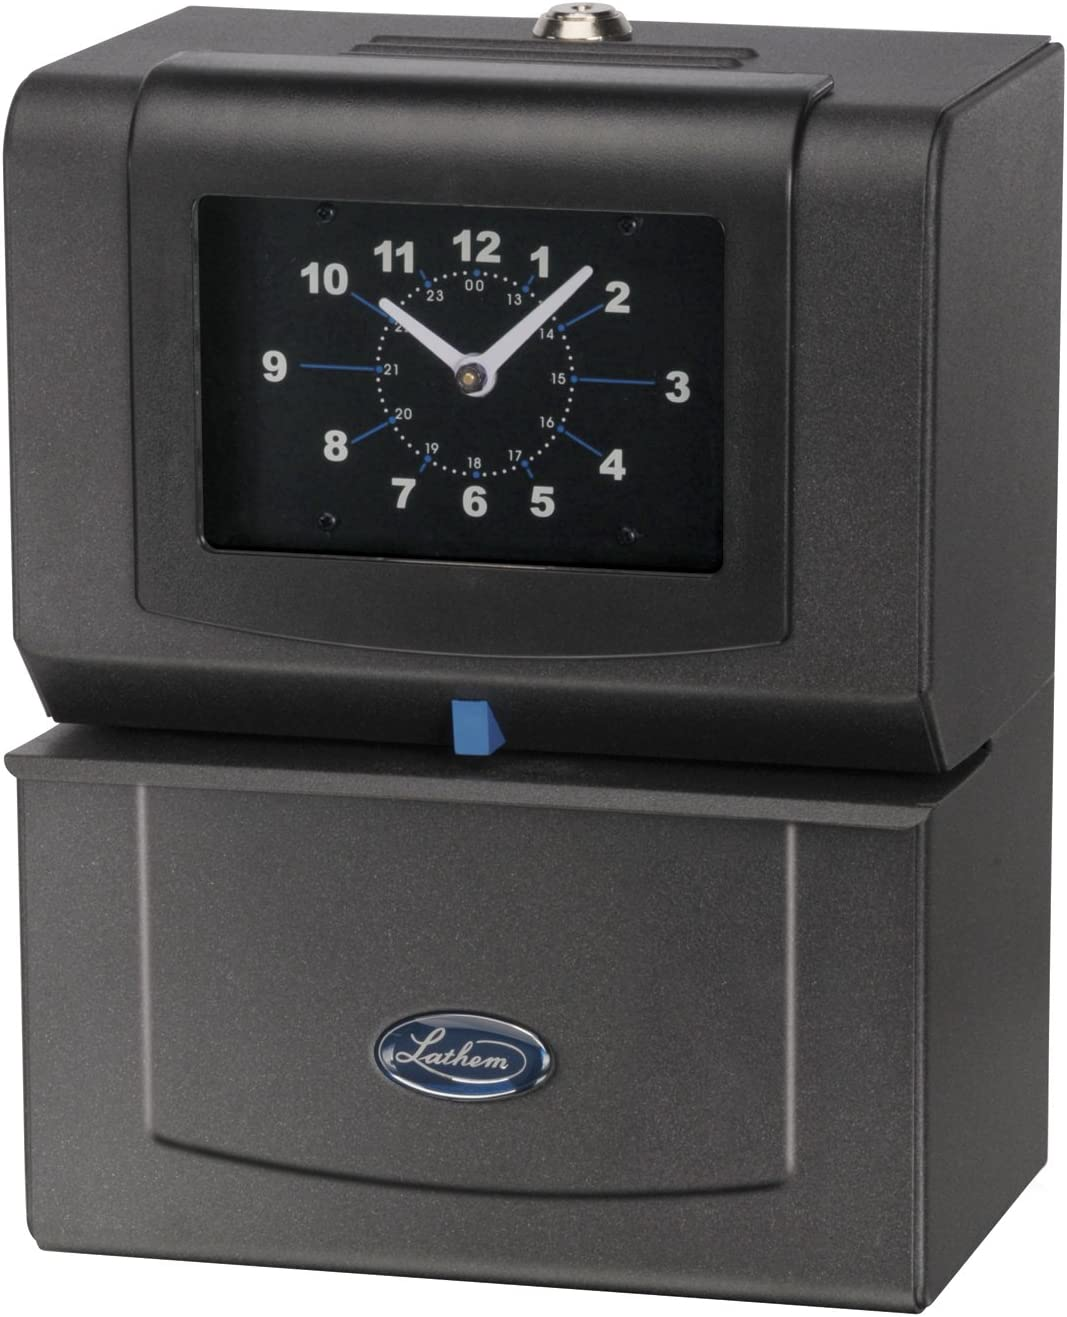 LTH4001 Automatic Model Heavy-Duty Time Recorder